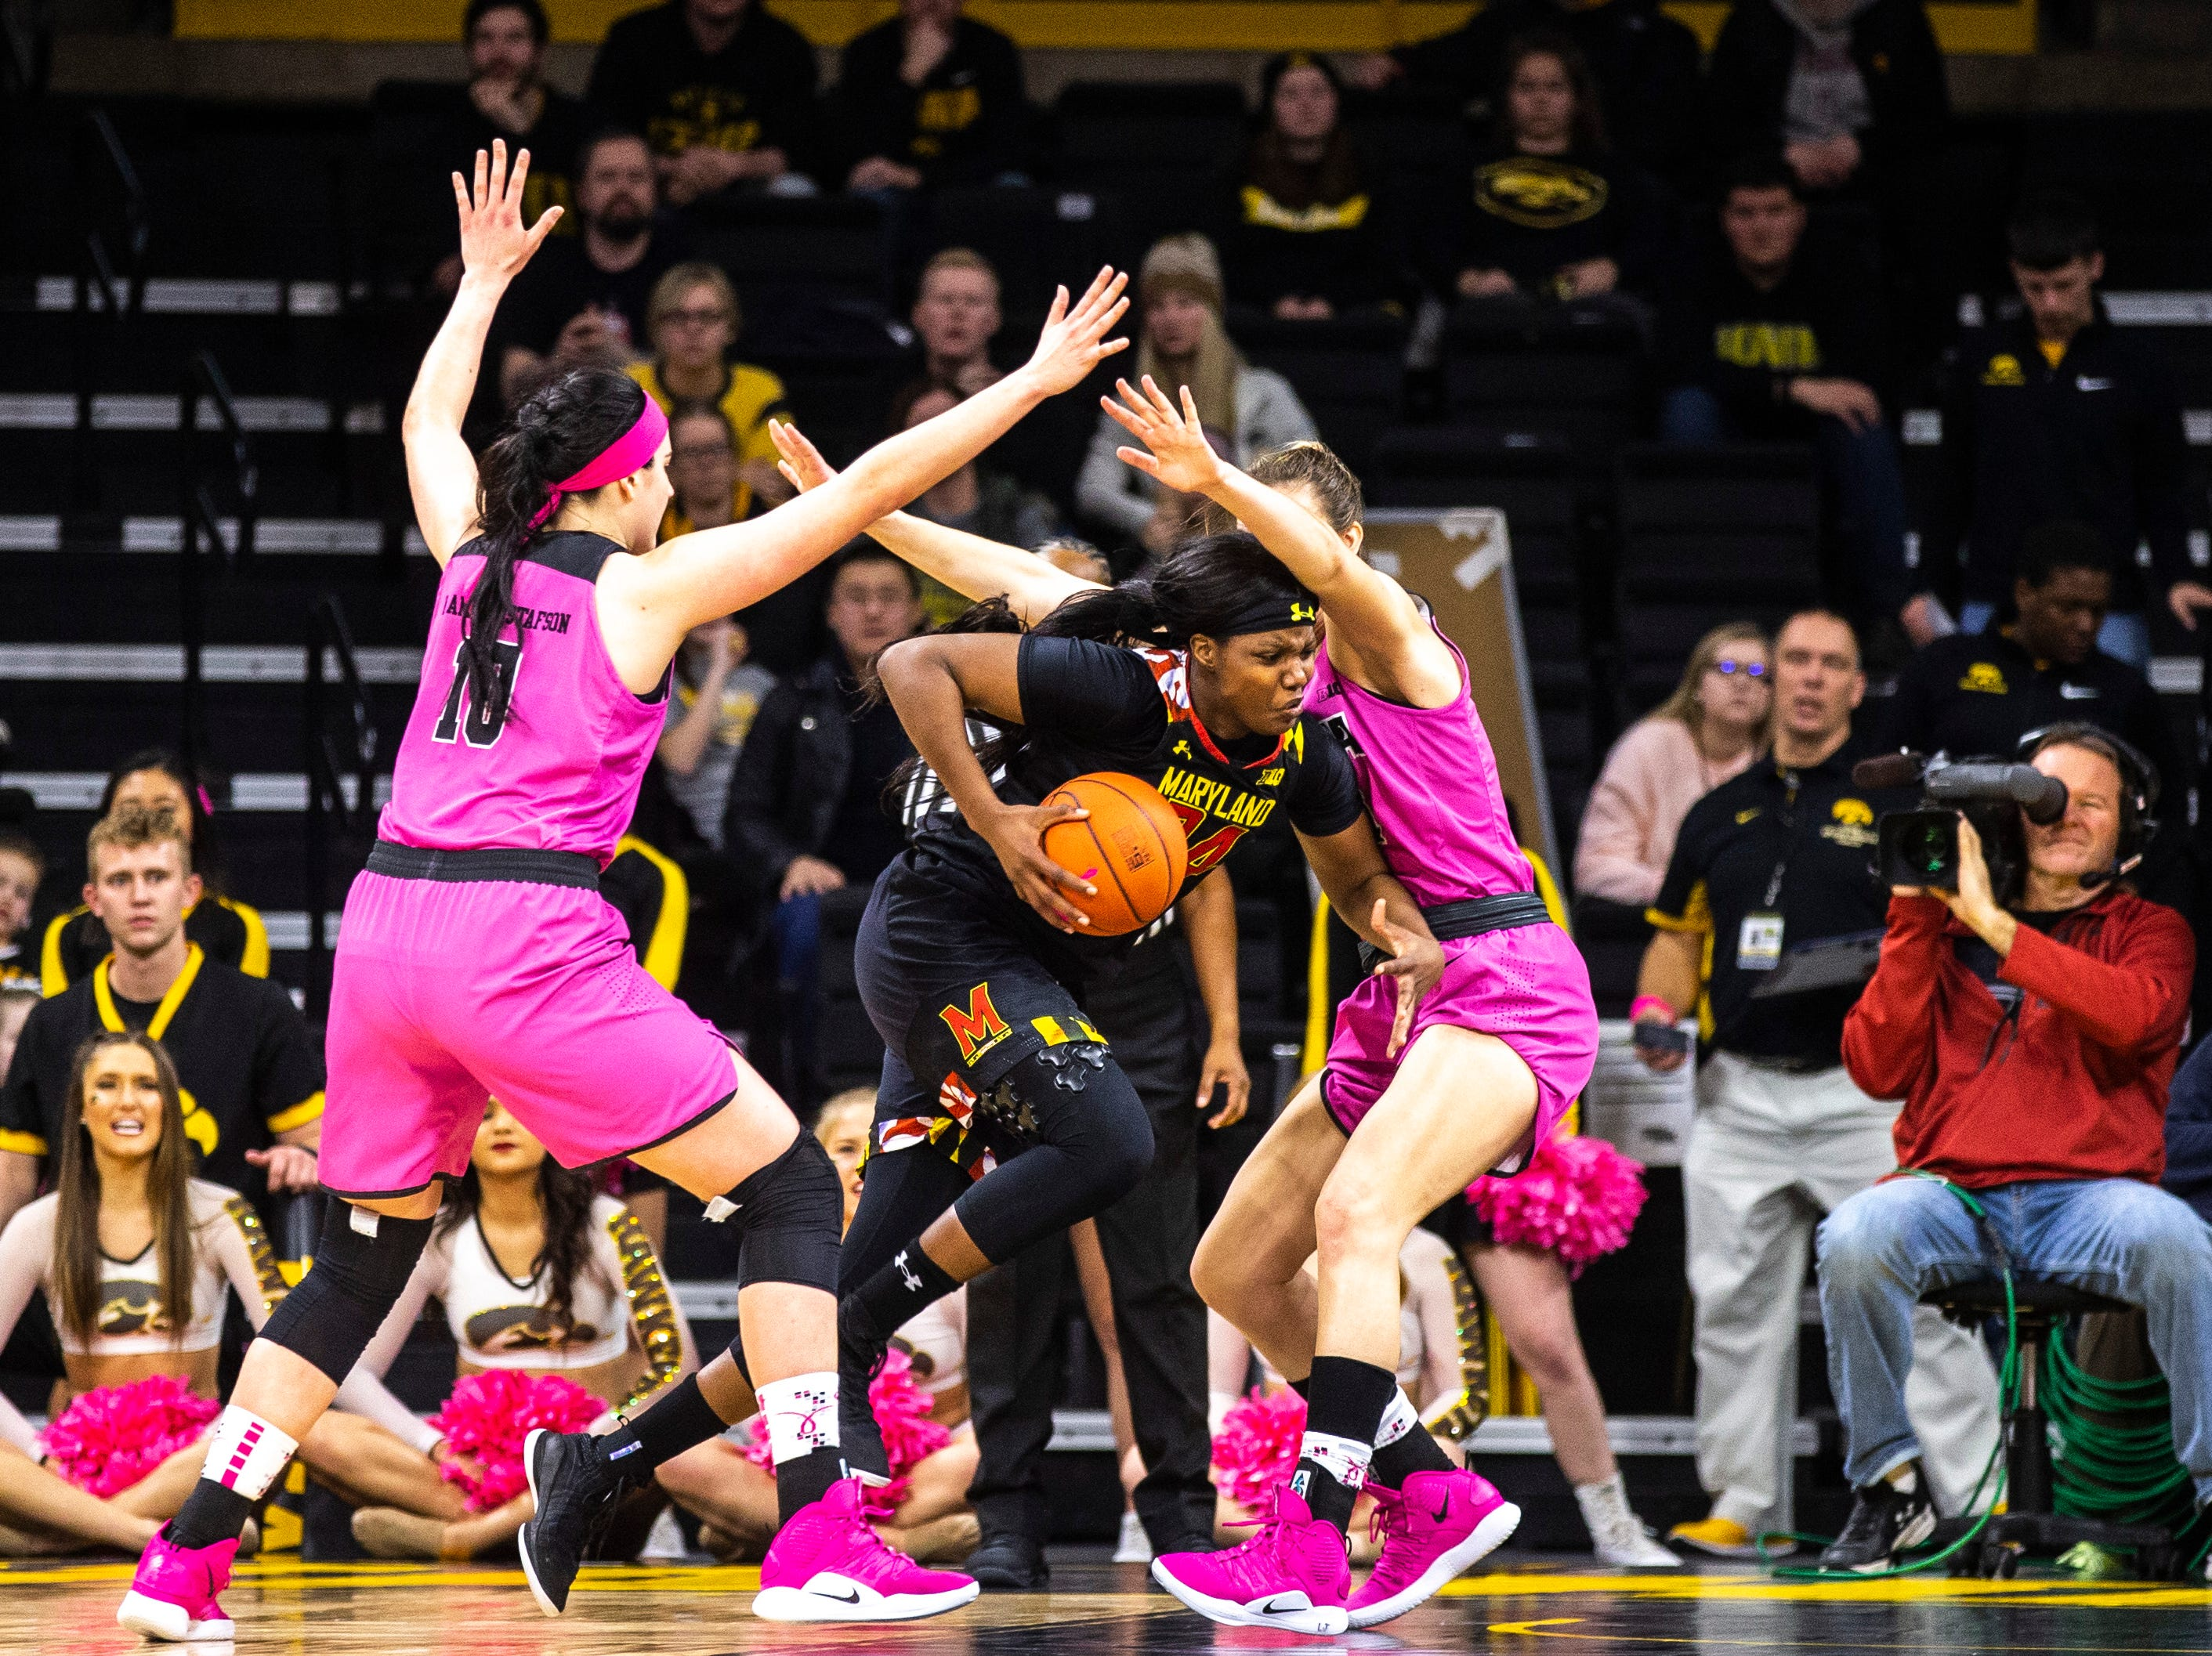 Maryland forward Brianna Fraser (34) drives to the basket while Iowa center Megan Gustafson (10) and Iowa forward Hannah Stewart, right, defend during a NCAA Big Ten Conference women's basketball game on Sunday, Feb. 17, 2019 at Carver-Hawkeye Arena in Iowa City, Iowa.